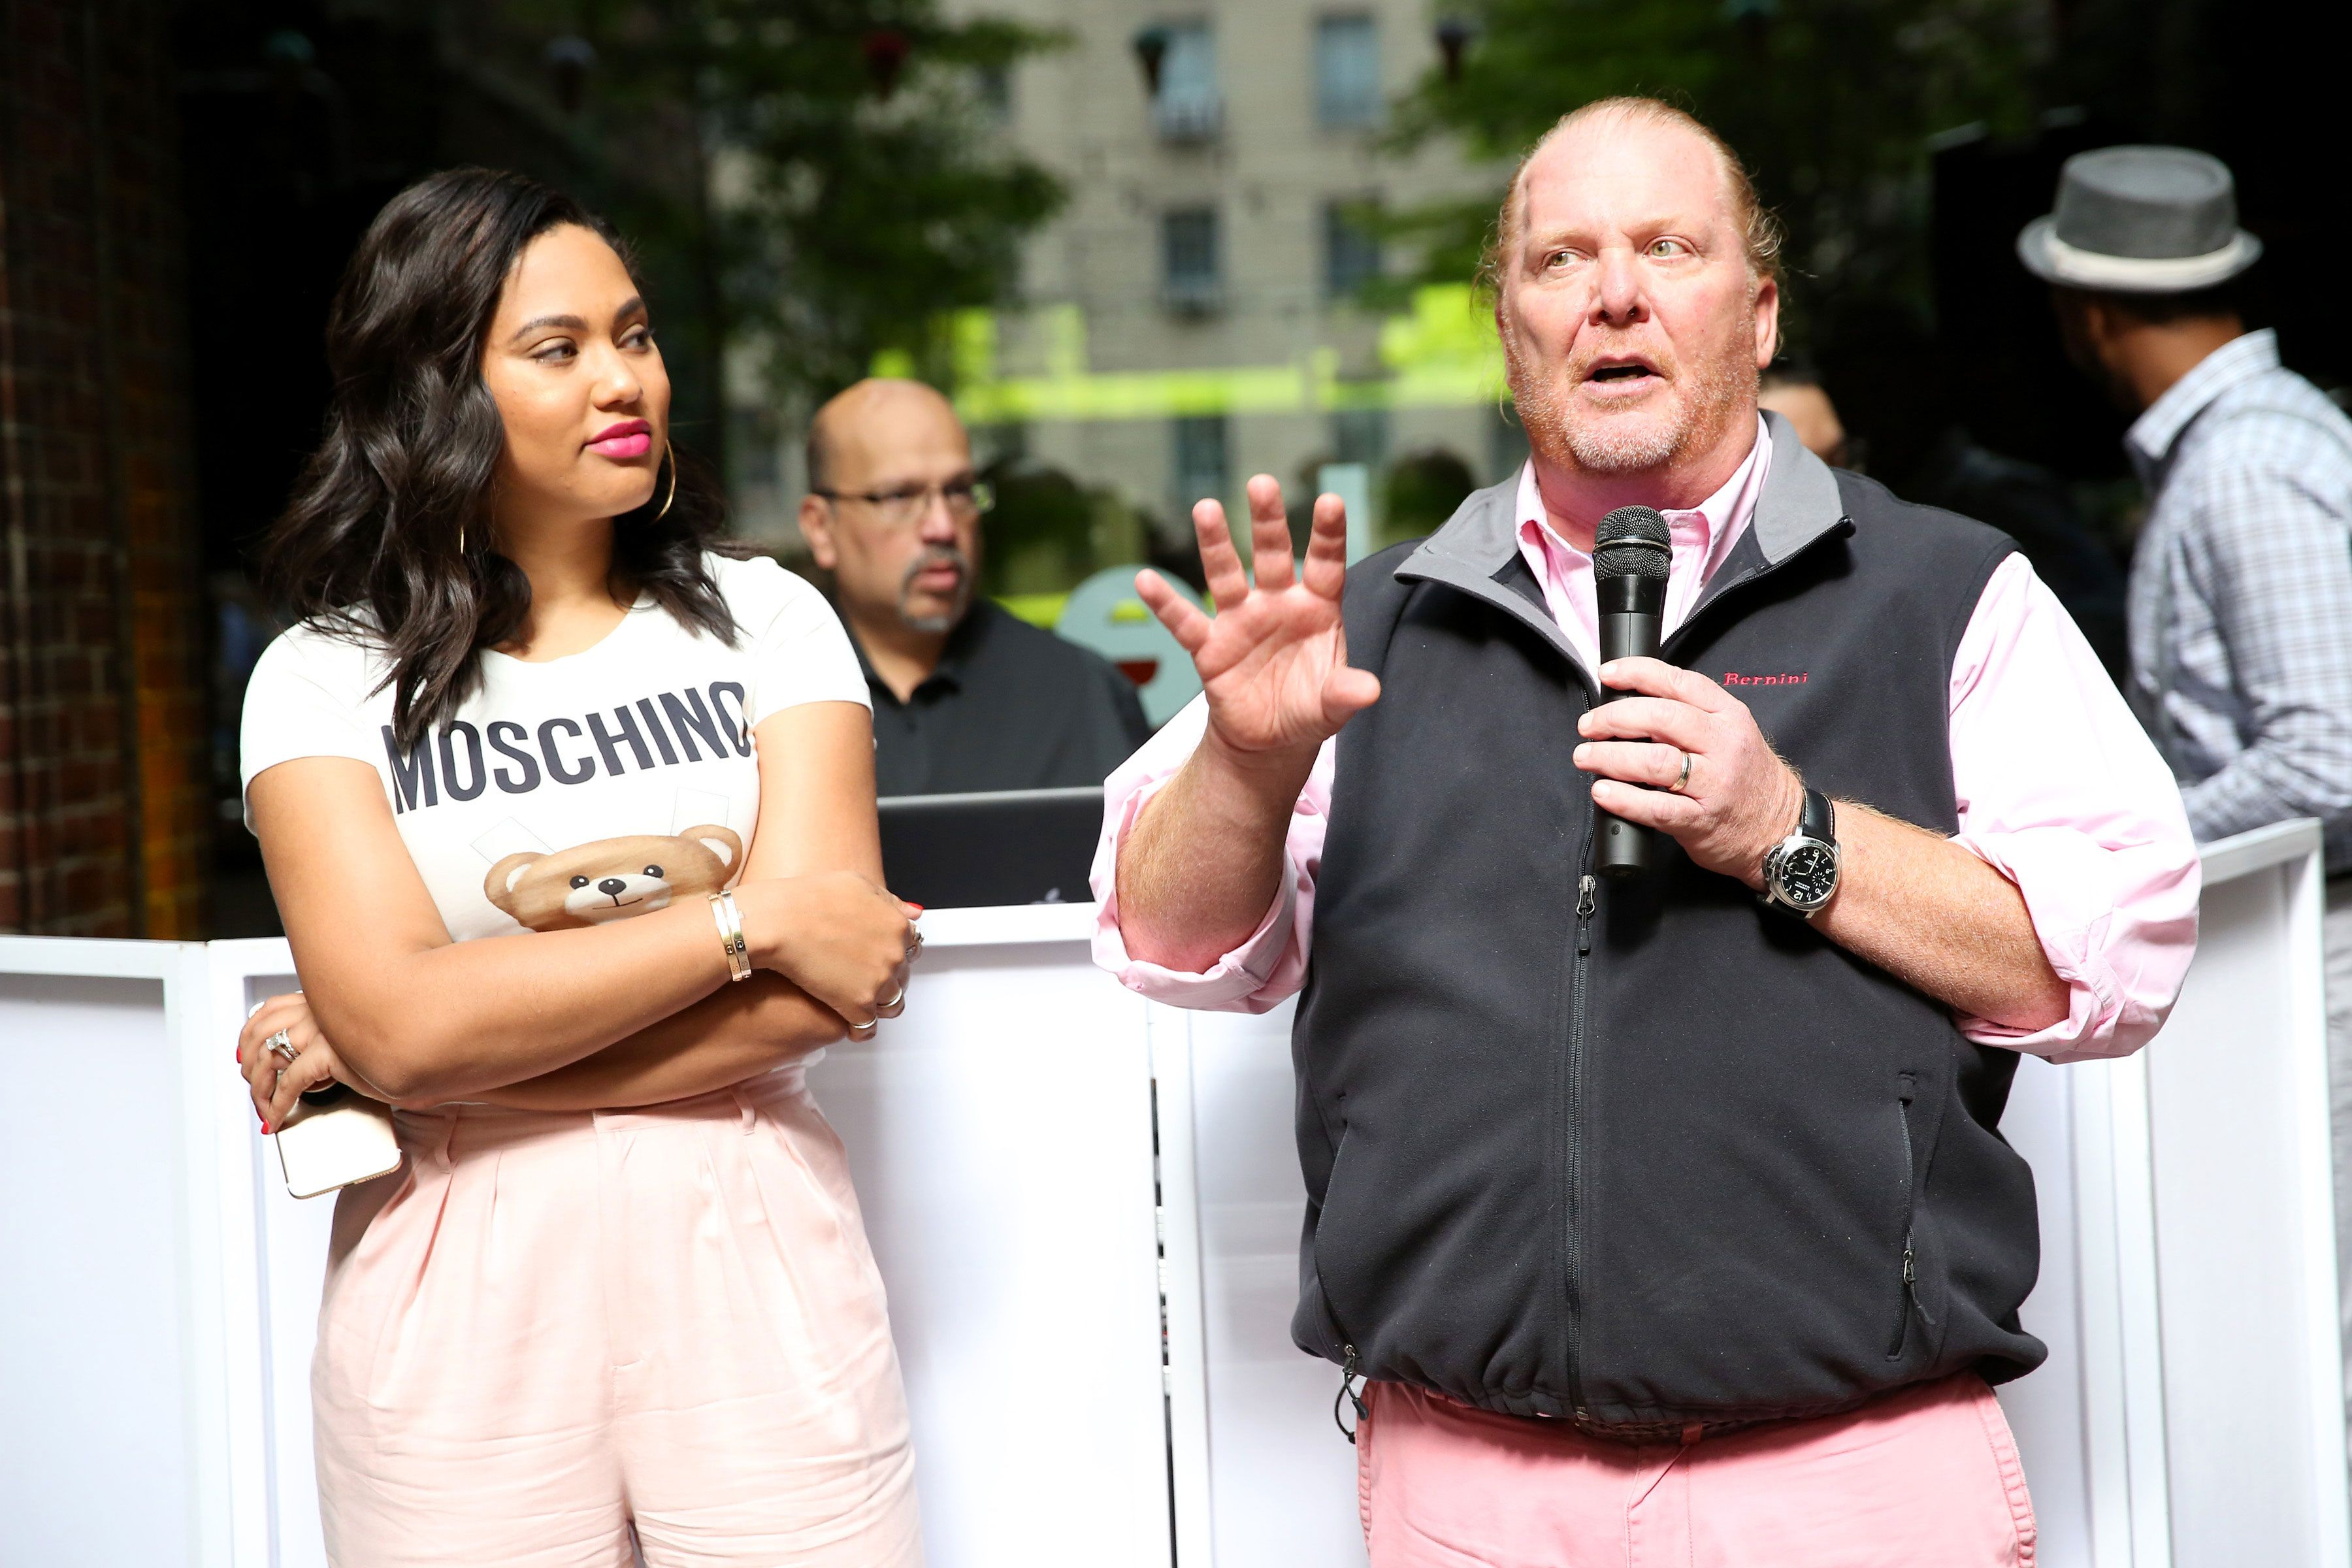 Television Personality Ayesha Curry and Chef Mario Batali speak during Family Ice Cream Fun-dae hosted by Mario Batali and Ayesha Curry at Private Park at Hudson on October 14, 2017 in New York City.